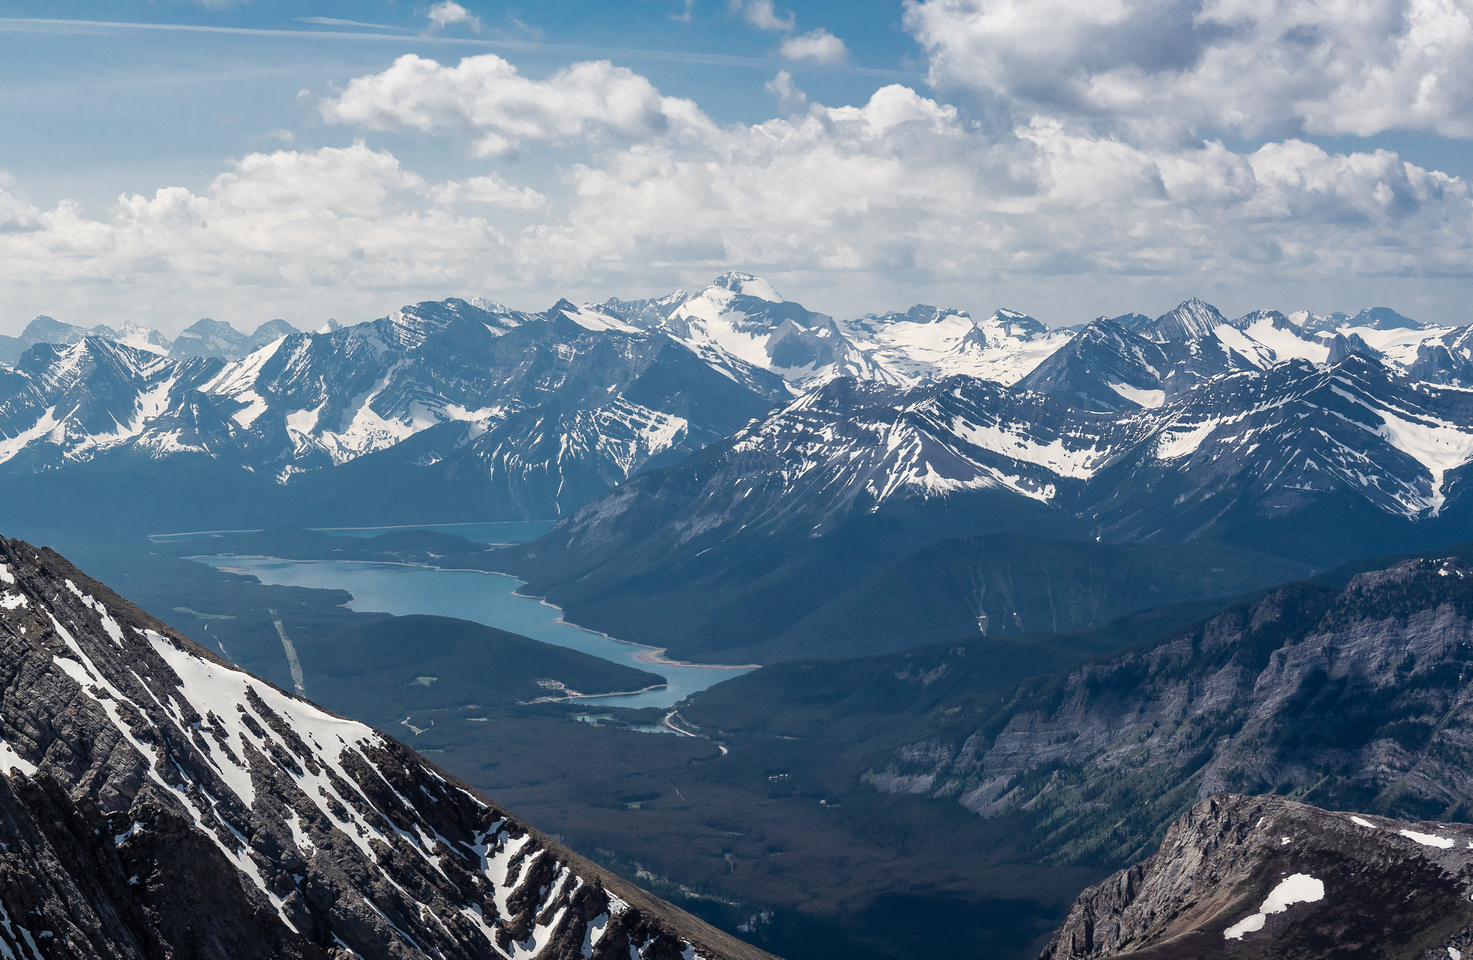 A slightly wider view towards the Aster Lake region with the Kananaskis Lakes at lower left. Foch, Sarrail, Indefatigable, Warrior, Lyatey and Invincible now showing up.